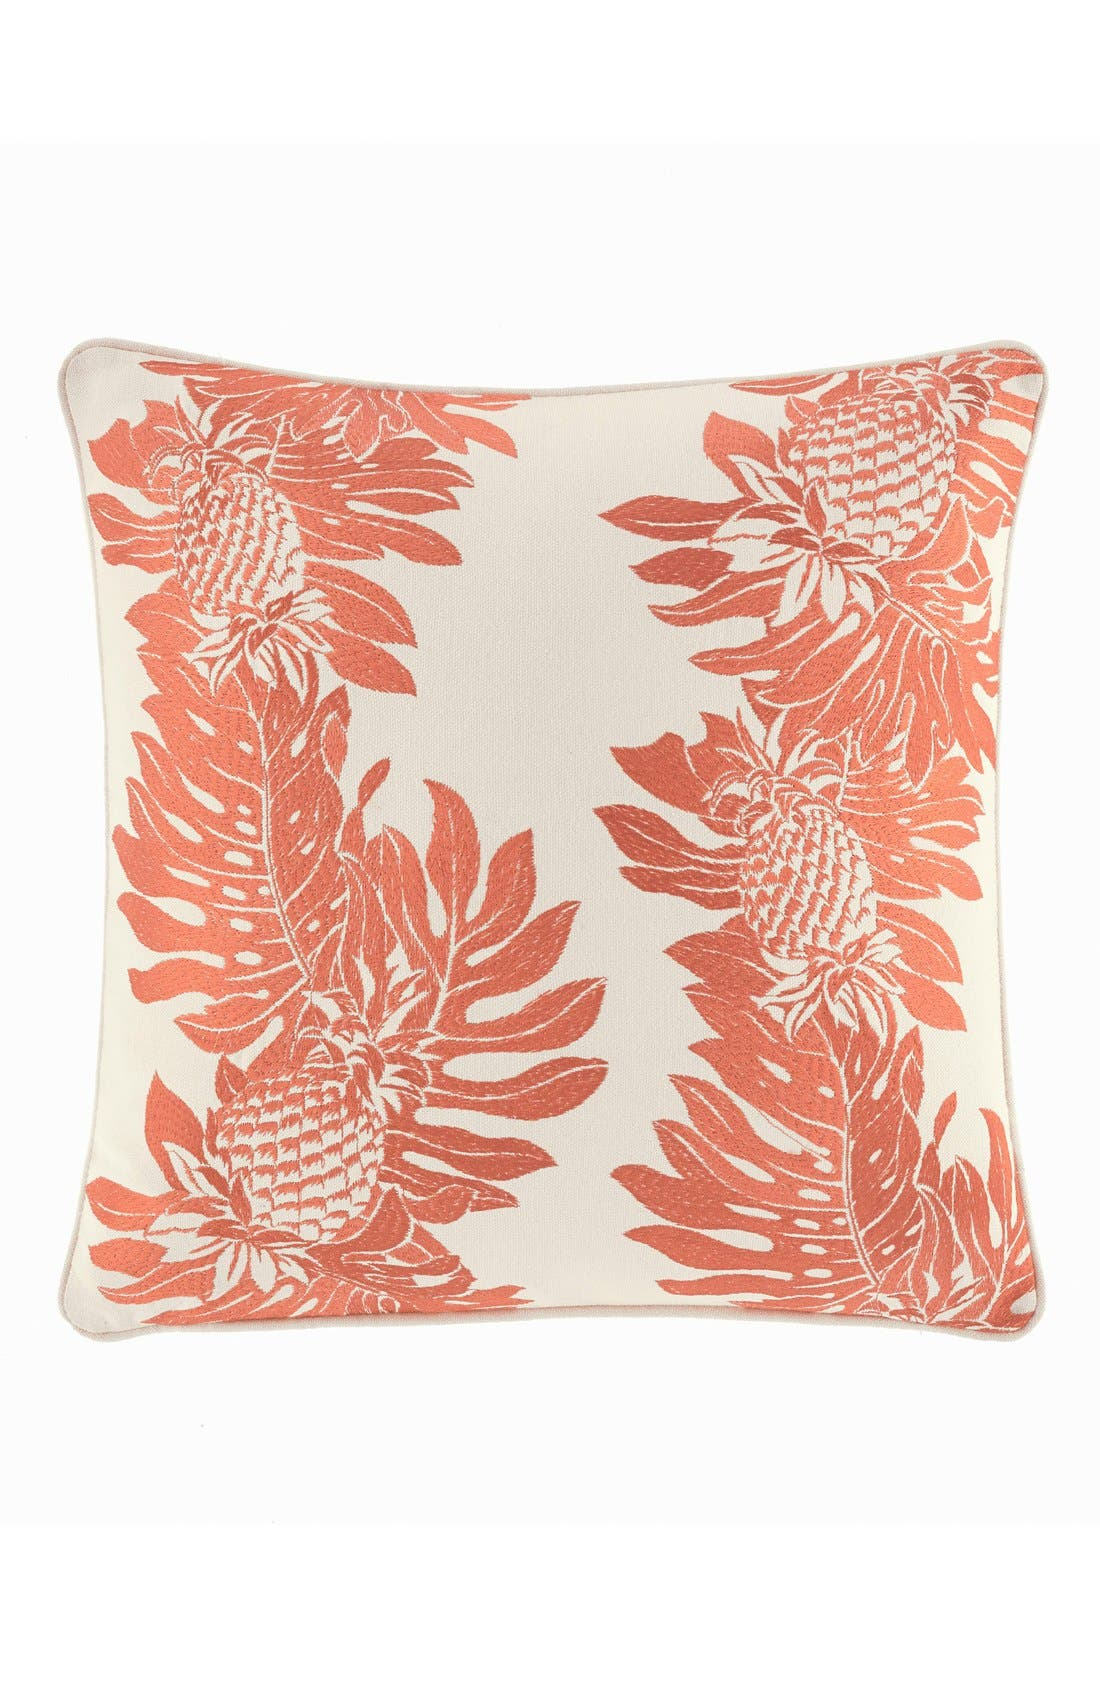 'Pineapple' Accent Pillow,                             Main thumbnail 1, color,                             865